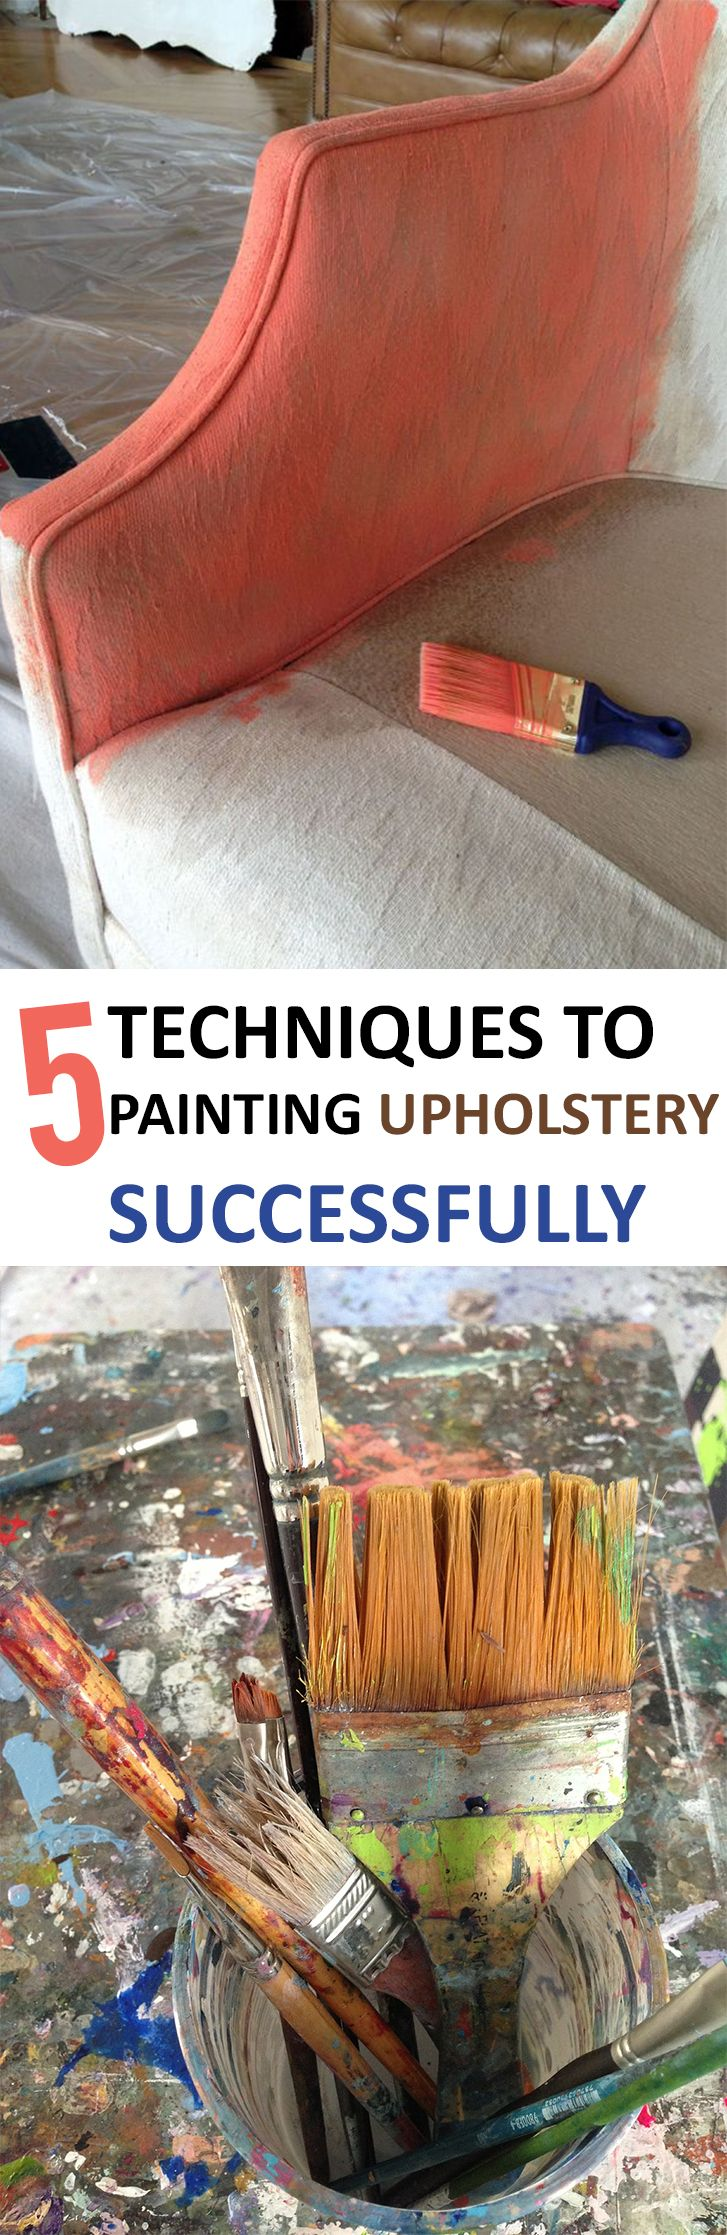 5 Techniques to Painting Upholstery Successfully (1)